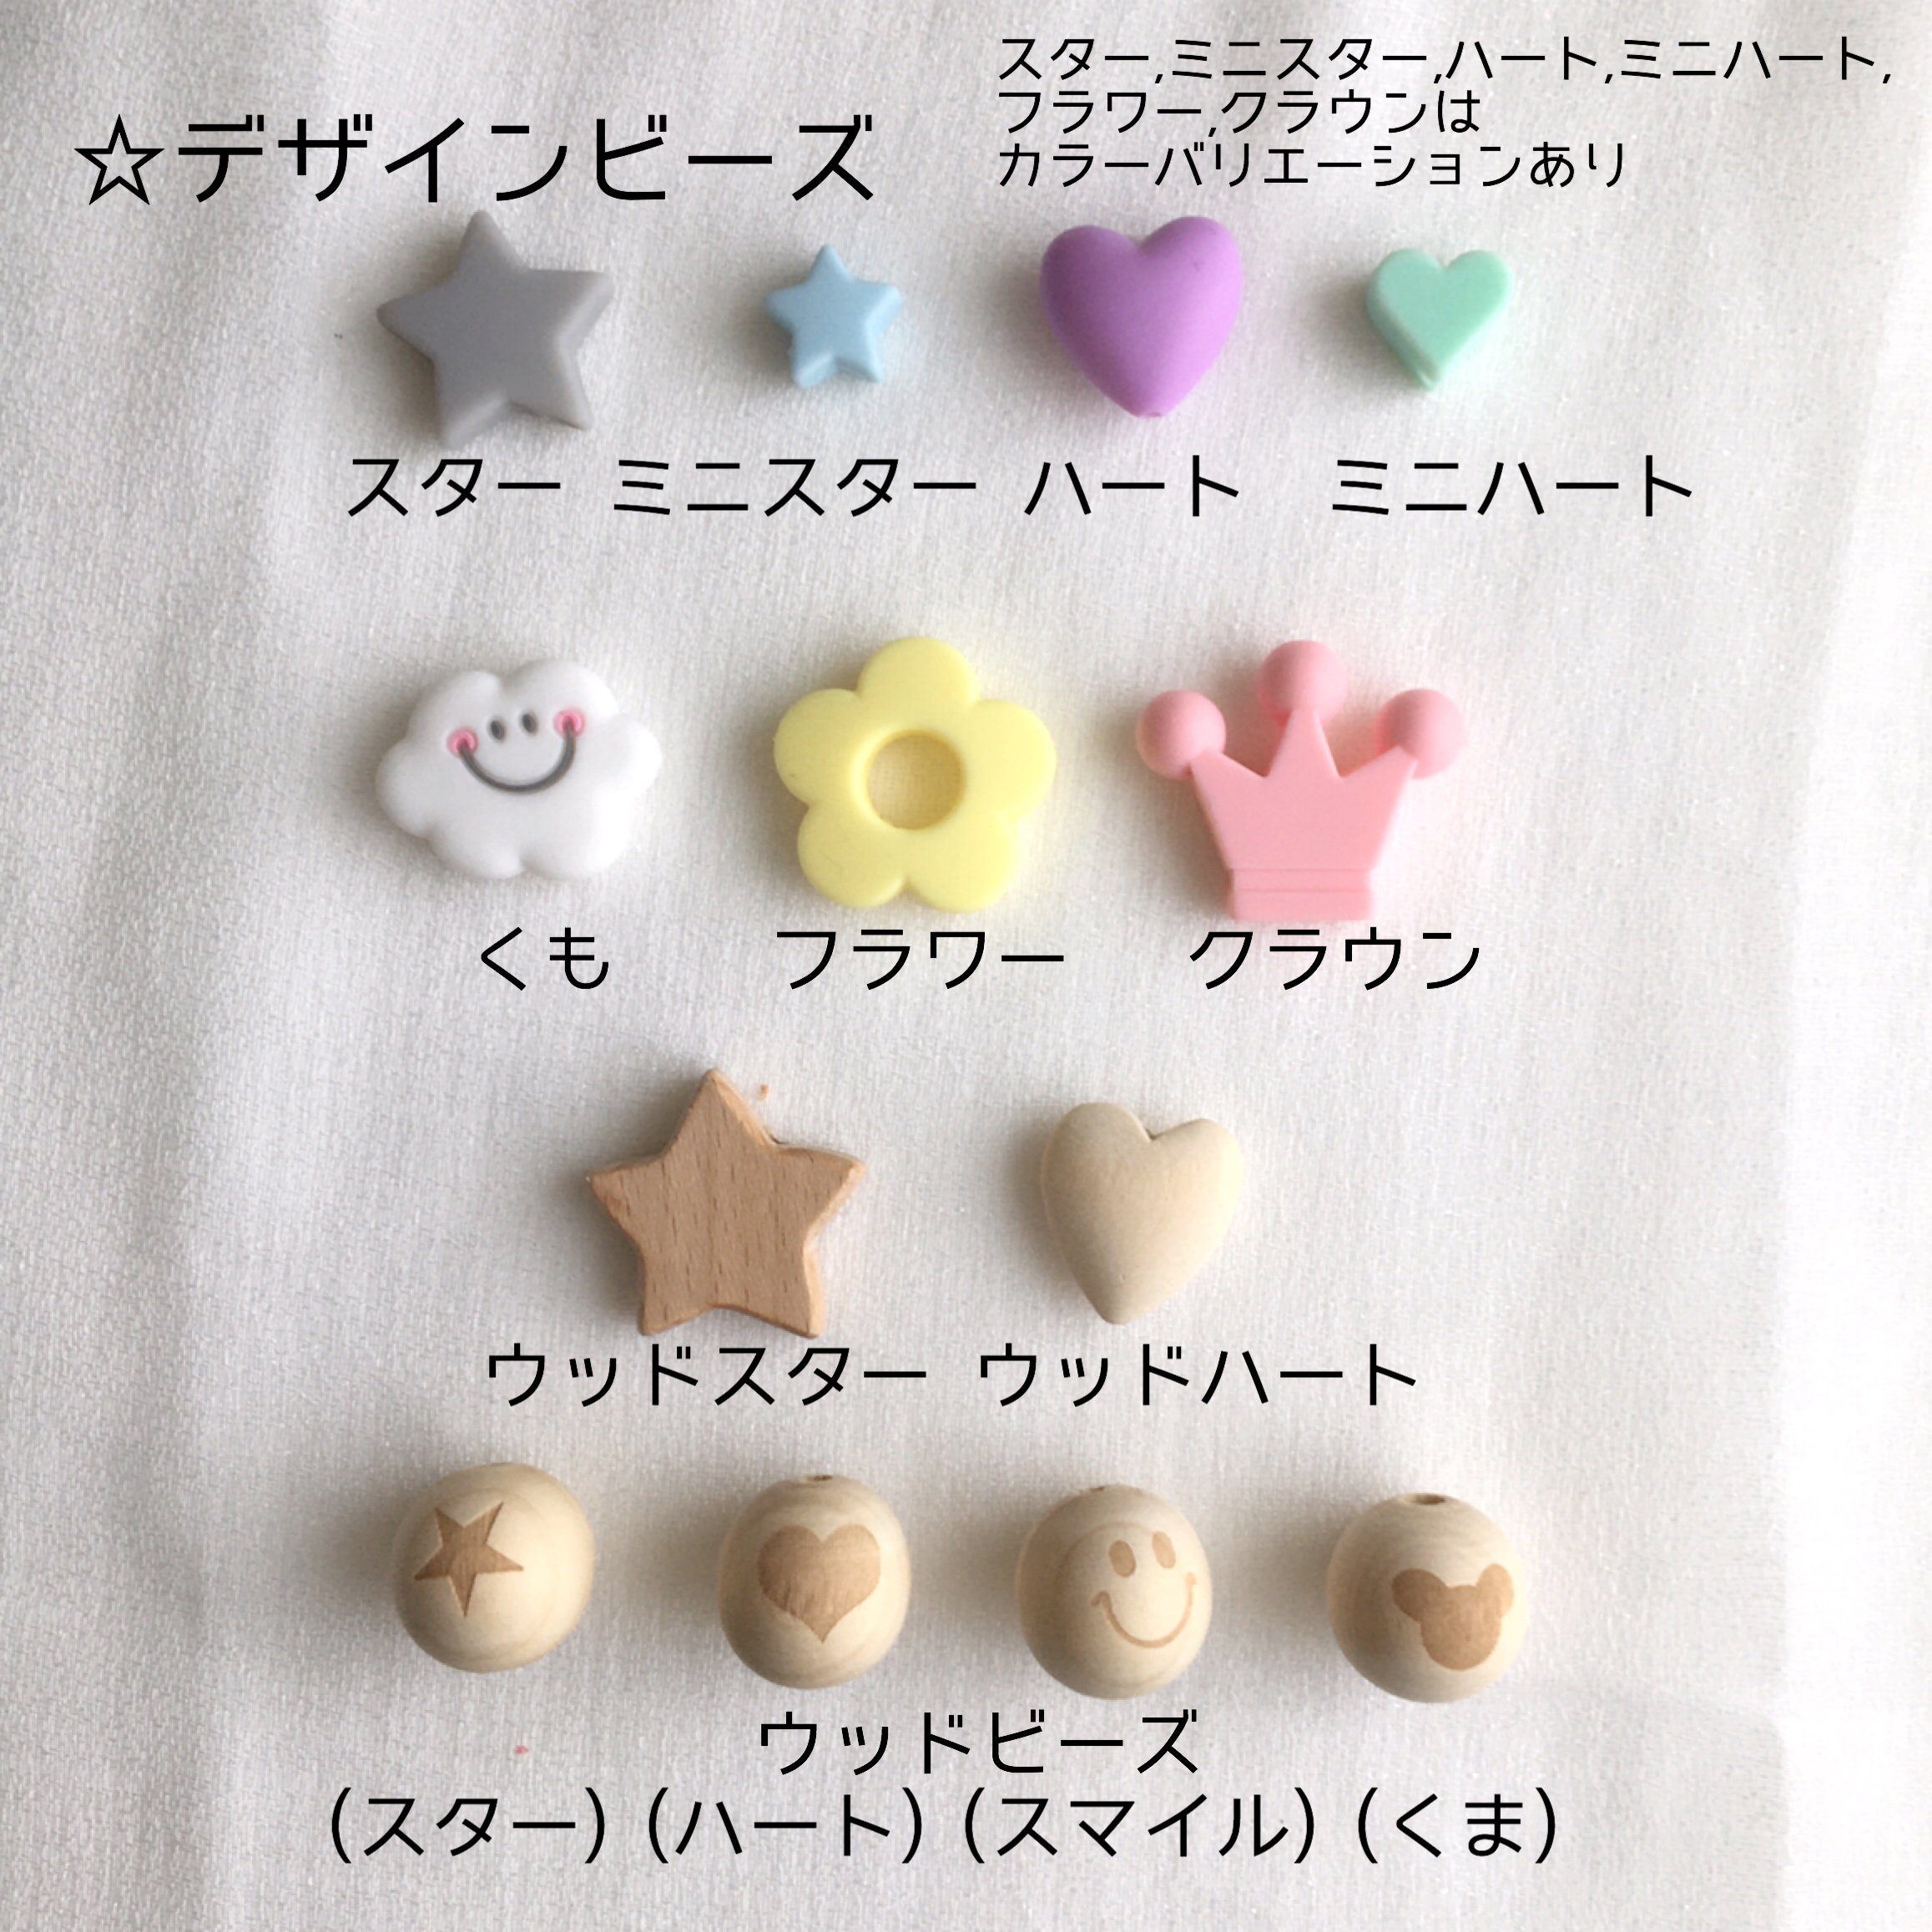 Tiny Teeth™ With*フルオーダー*なくしもの防止*便利グッズ